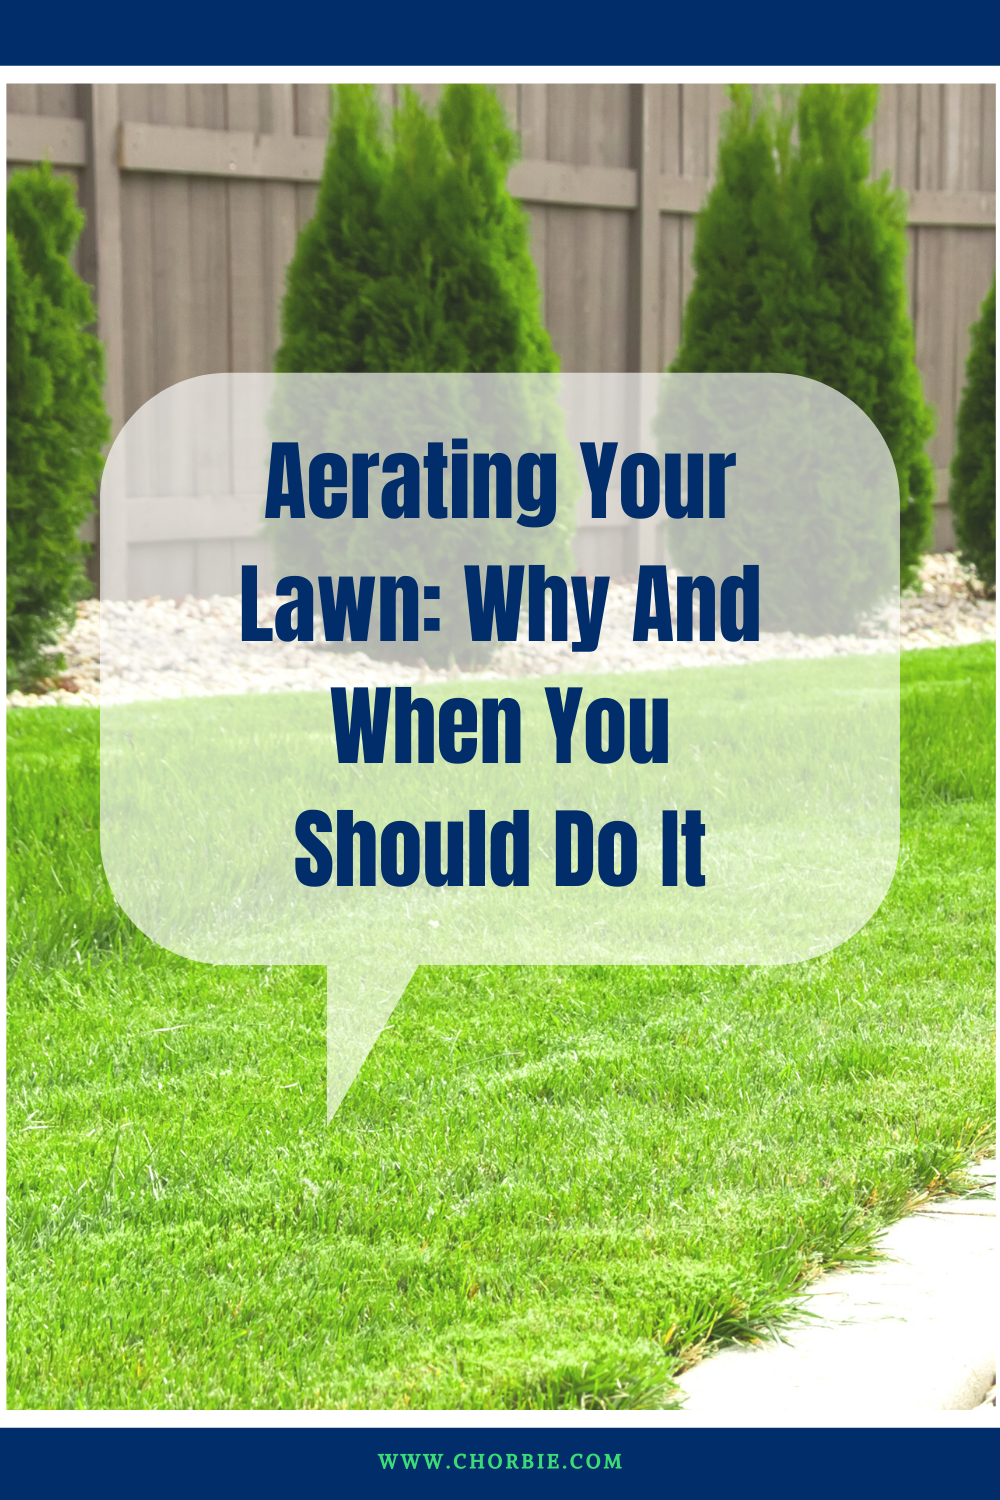 Aerating Your Lawn Why And When You Should Do It in 2020